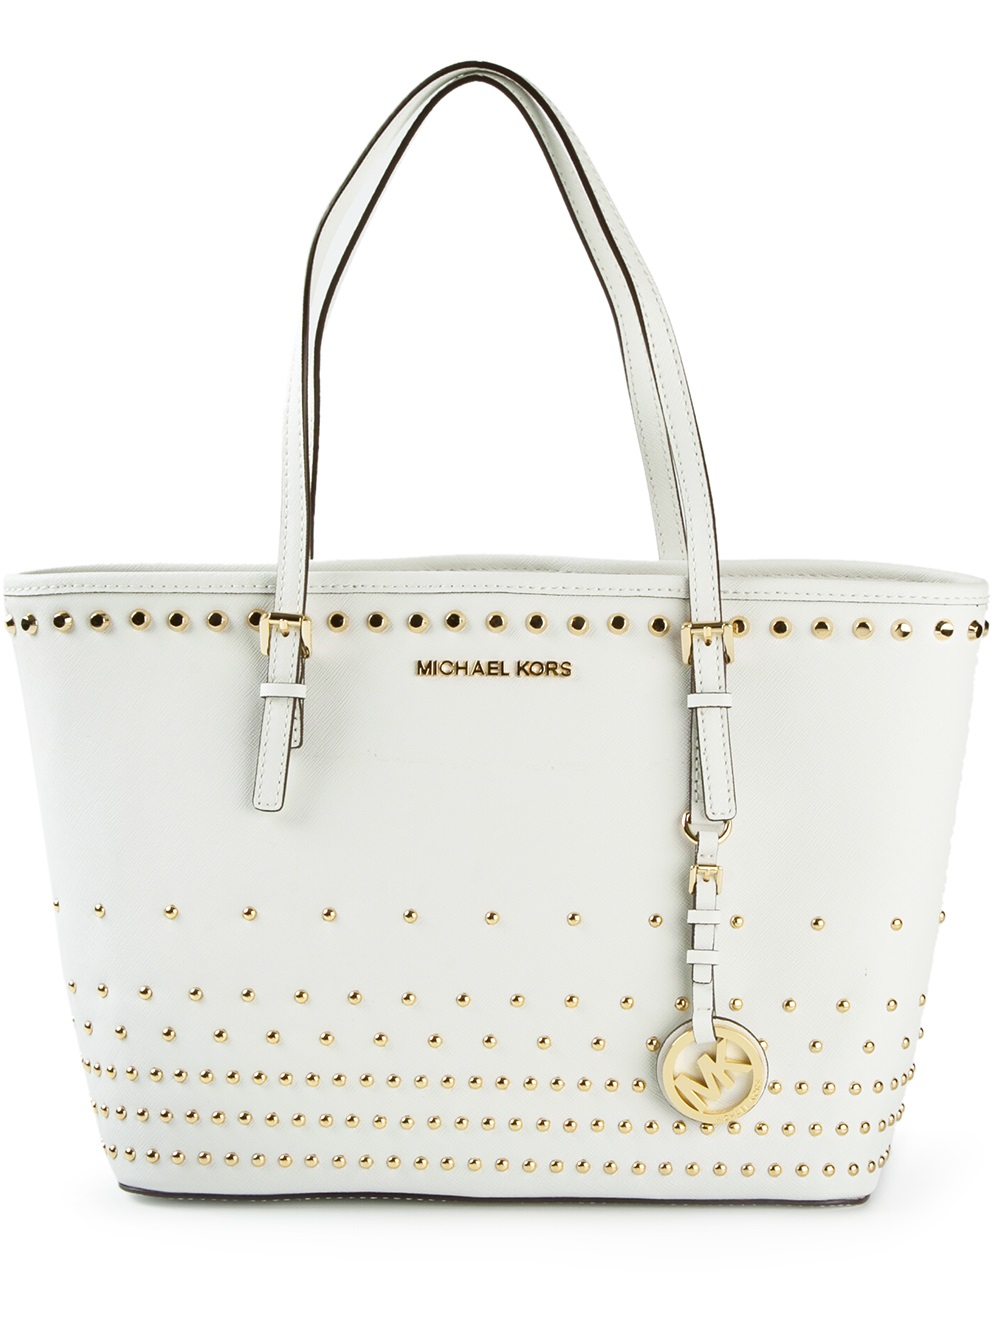 Michael michael kors Studded Tote in White | Lyst